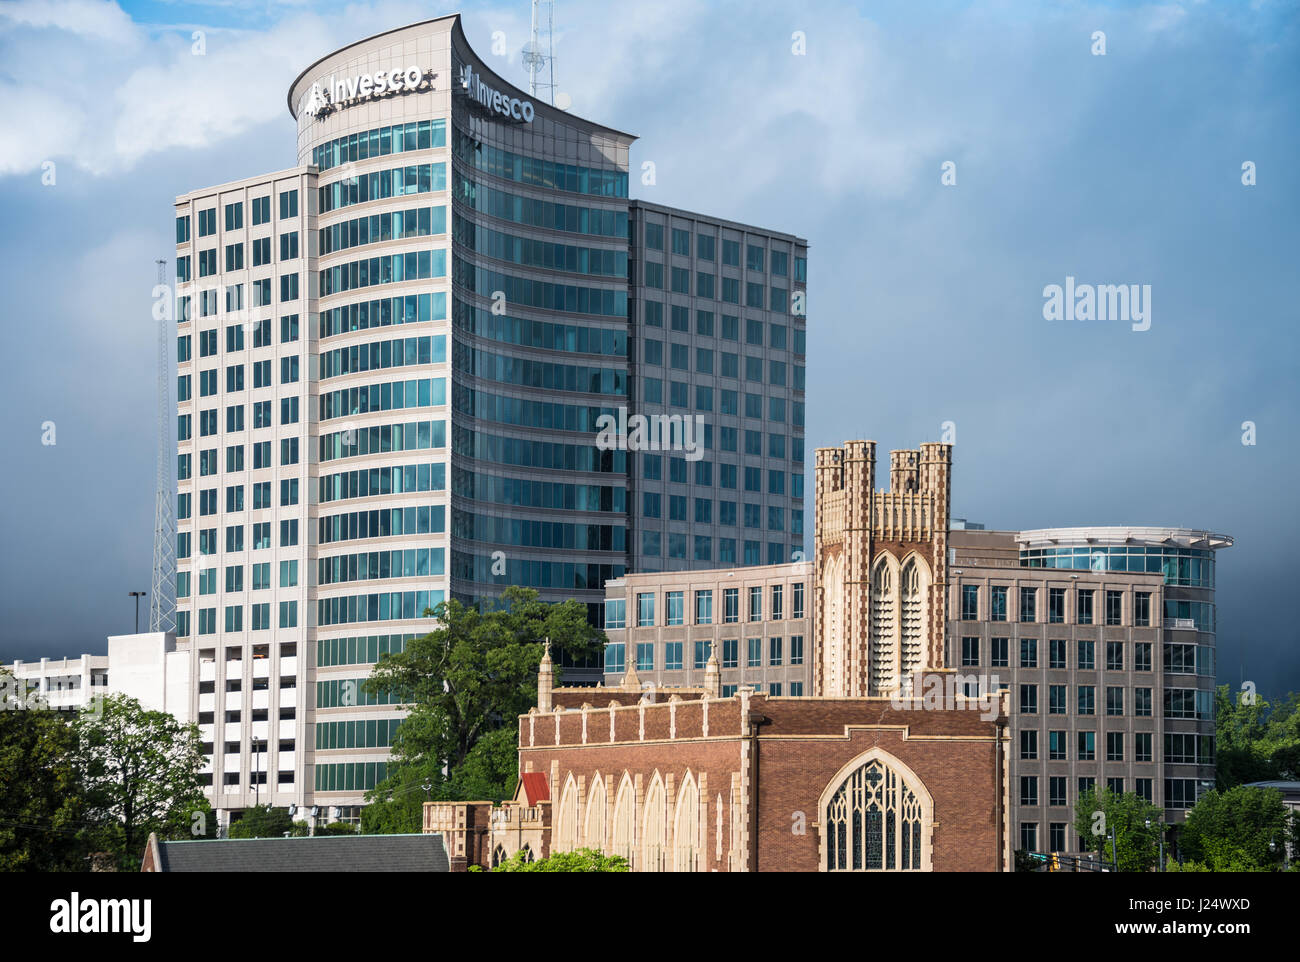 Architectural contrast along the Atlanta, Georgia skyline where the modern Invesco building towers above the Peachtree - Stock Image